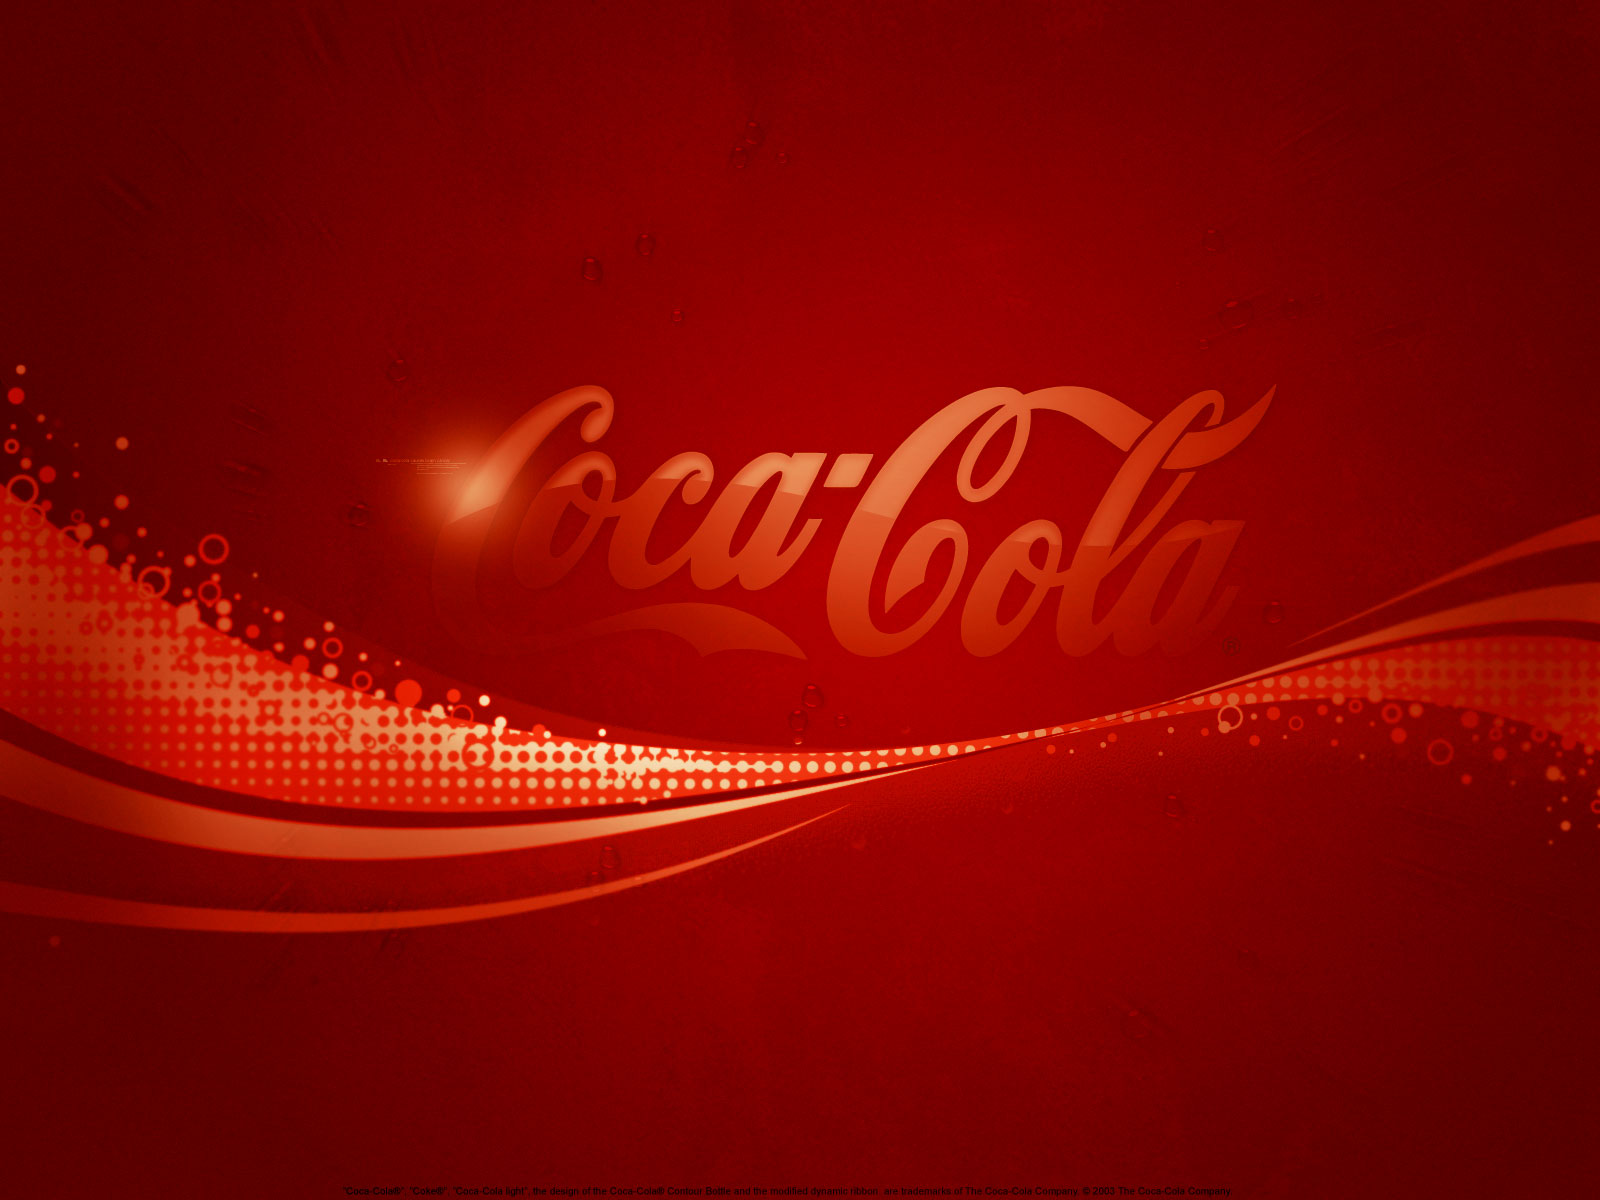 coke_wallpaper05_1600.jpg